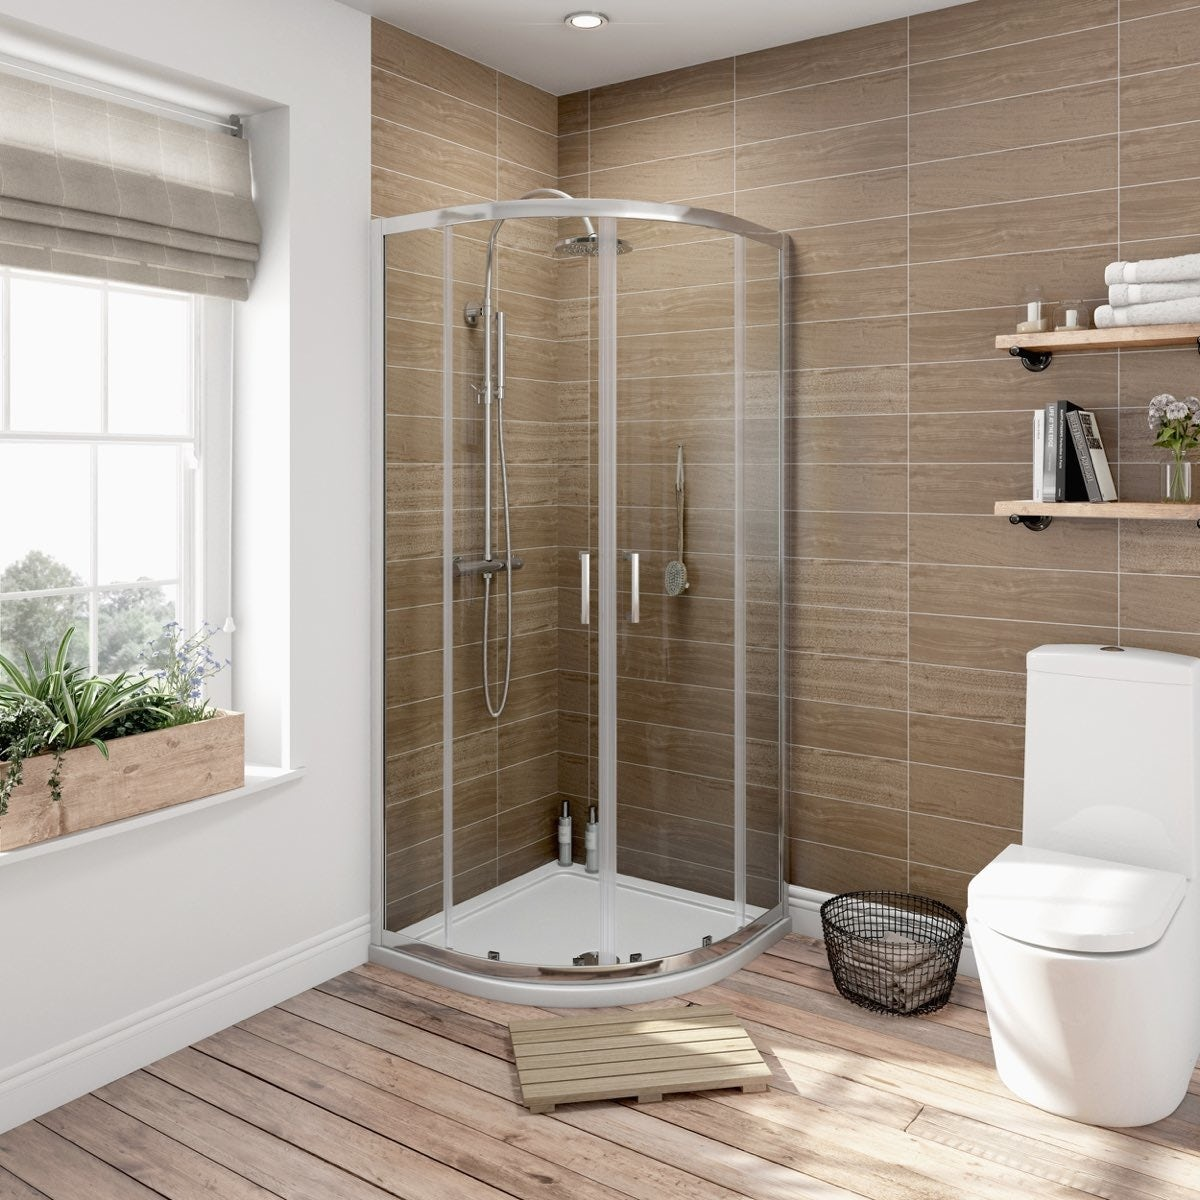 Bathroom suites with shower enclosures - Winchester Bathroom Suite With Quadrant Shower Enclosure And Tray 800 X 800